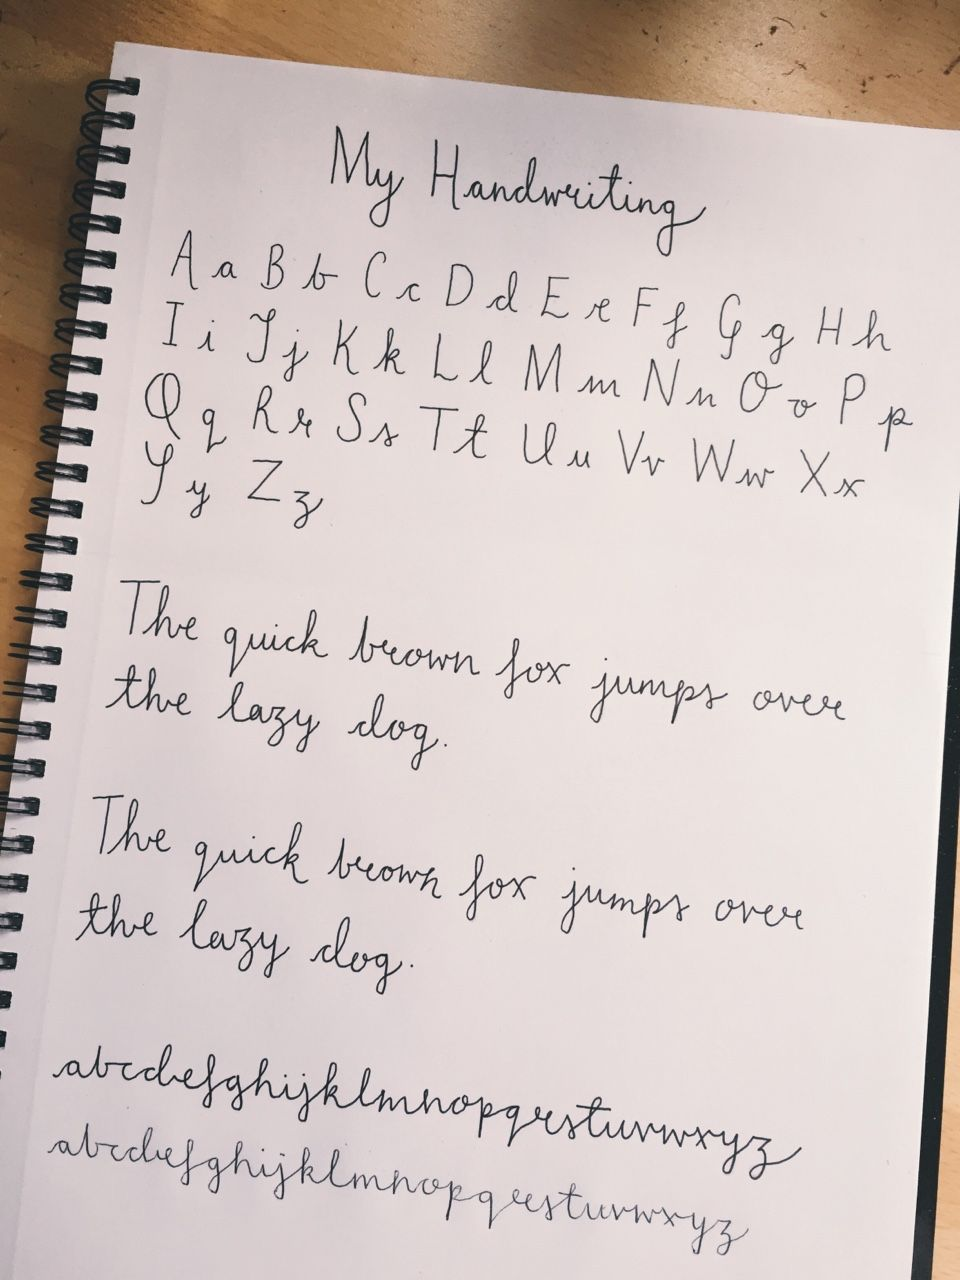 Had a few requests for a sheet of my handwriting, so I've